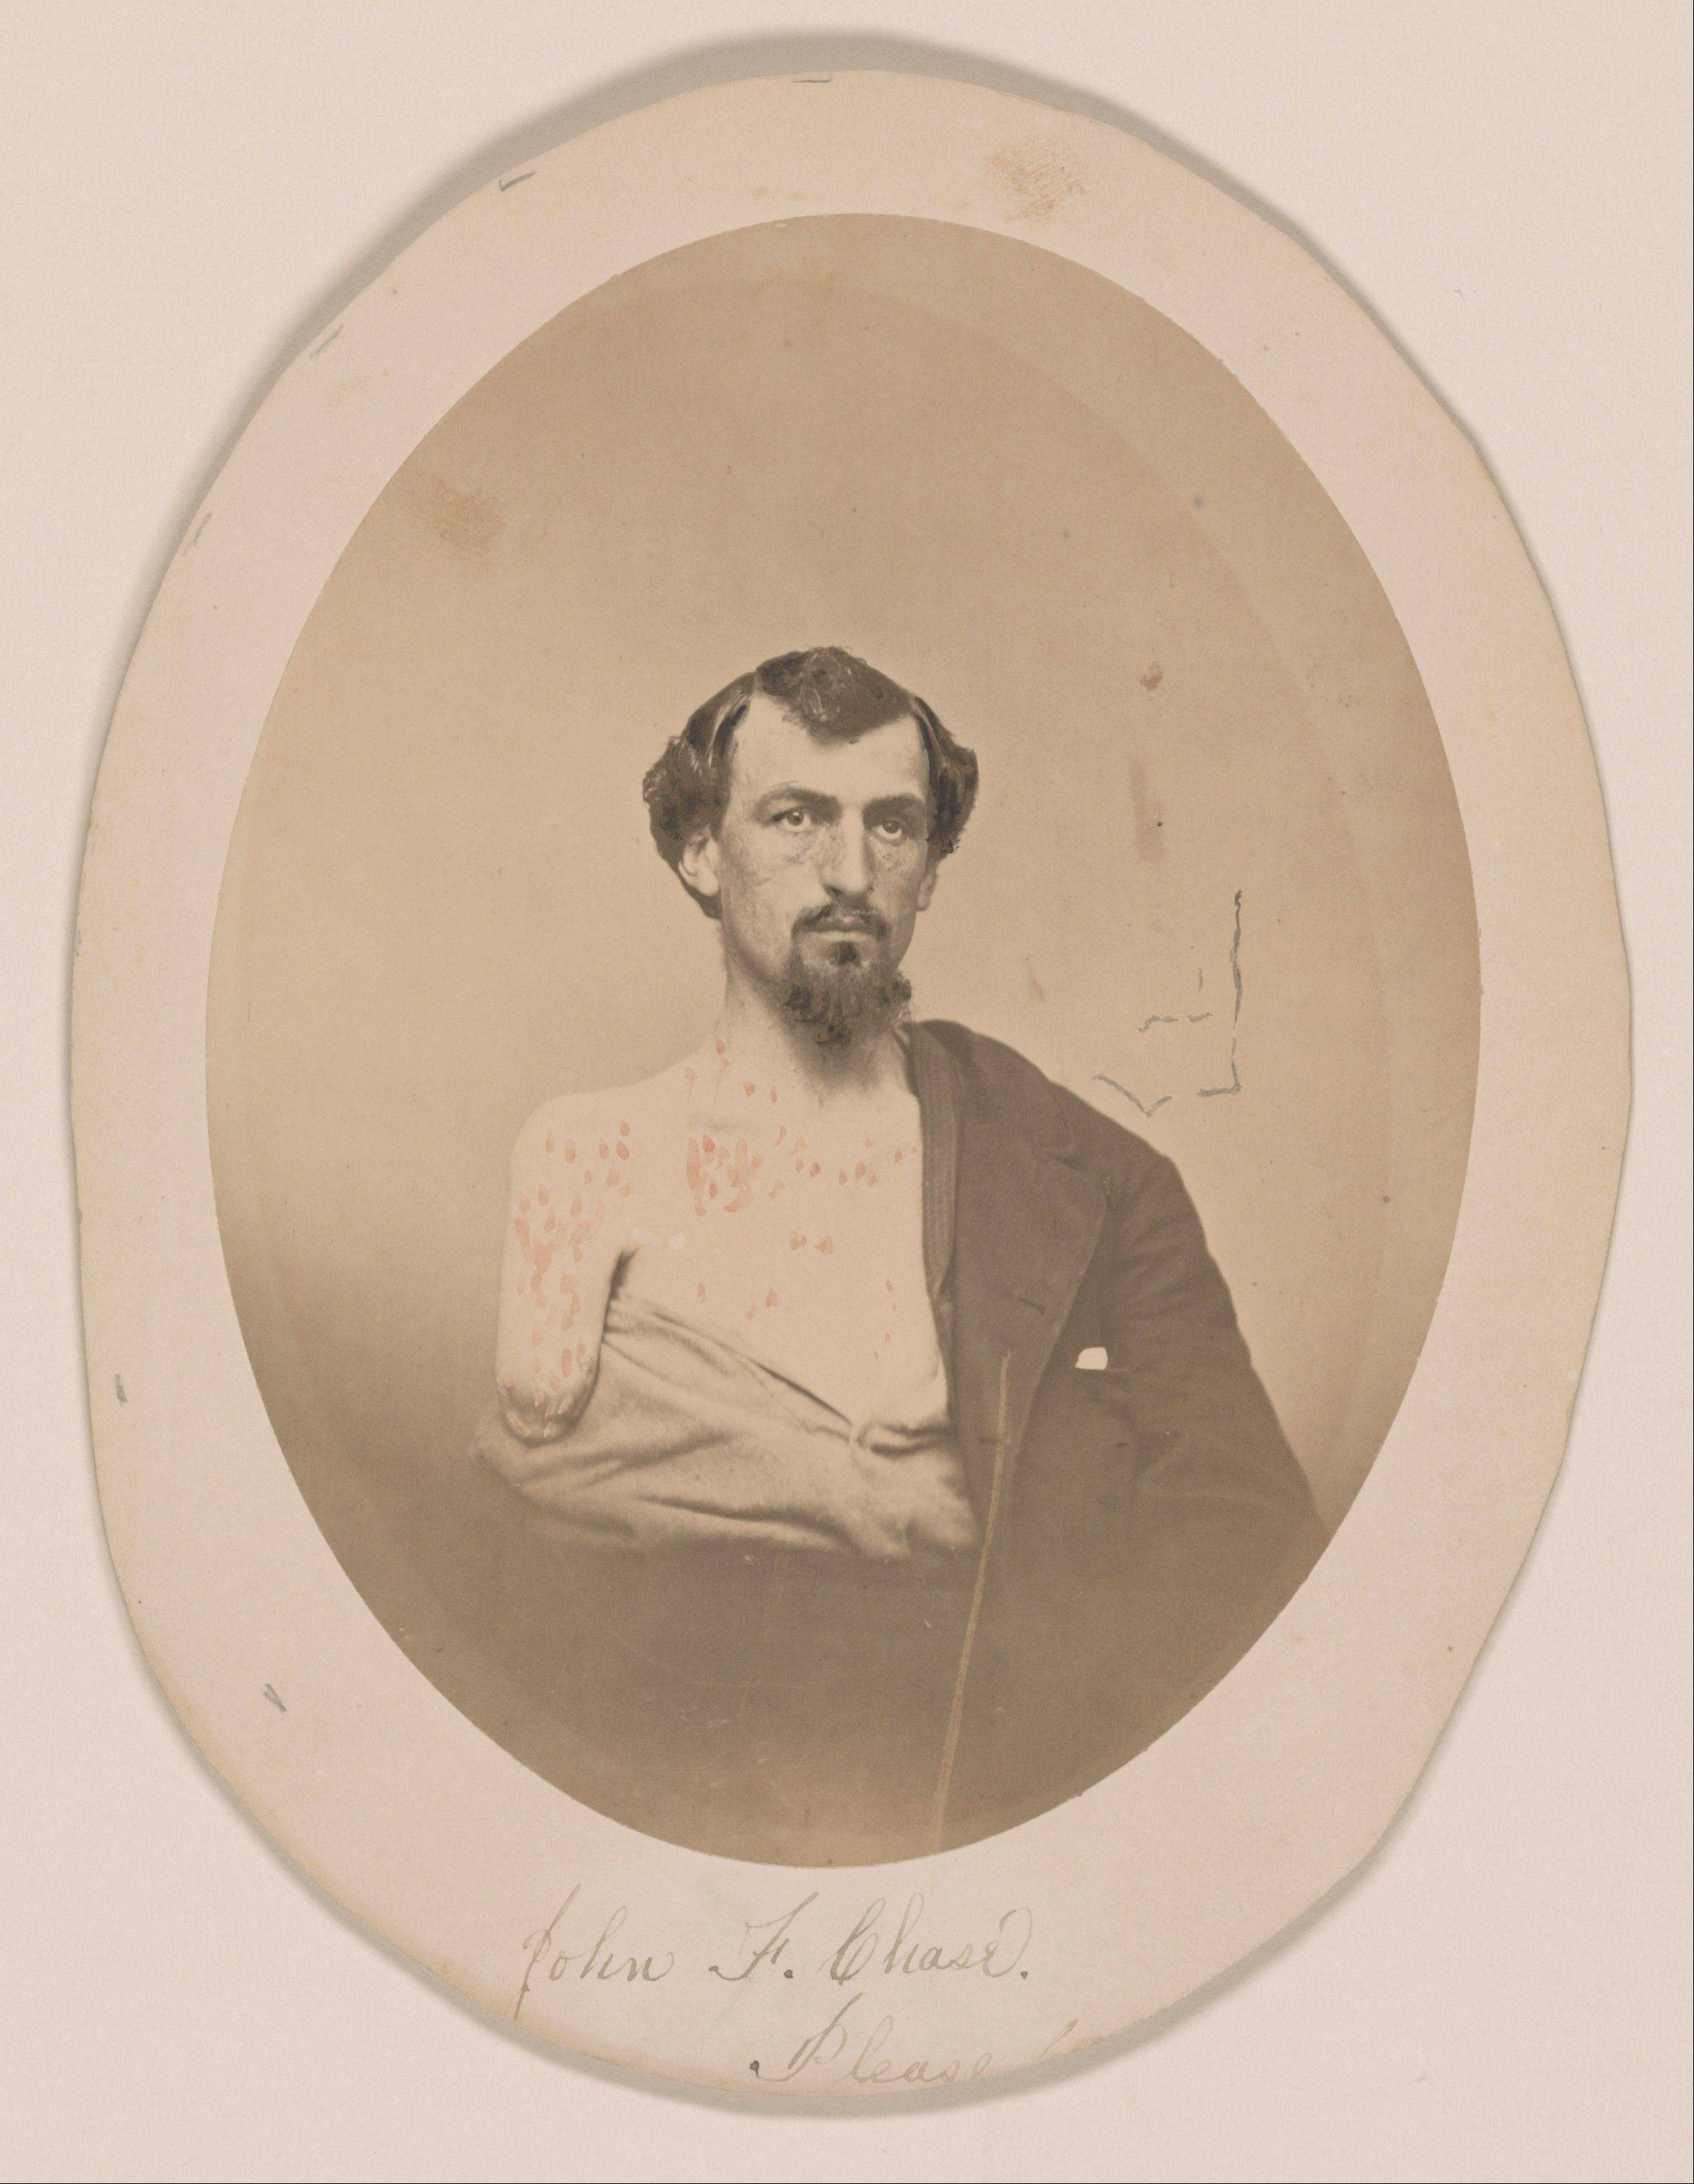 This undated handout image provided by the Library of Congress shows John F. Chase. who lost his right arm and left eye at Gettysburg, which is part of an exhibit at the Library of Congress of letters and diaries saved for 150 years from those who lived through the Civil War.